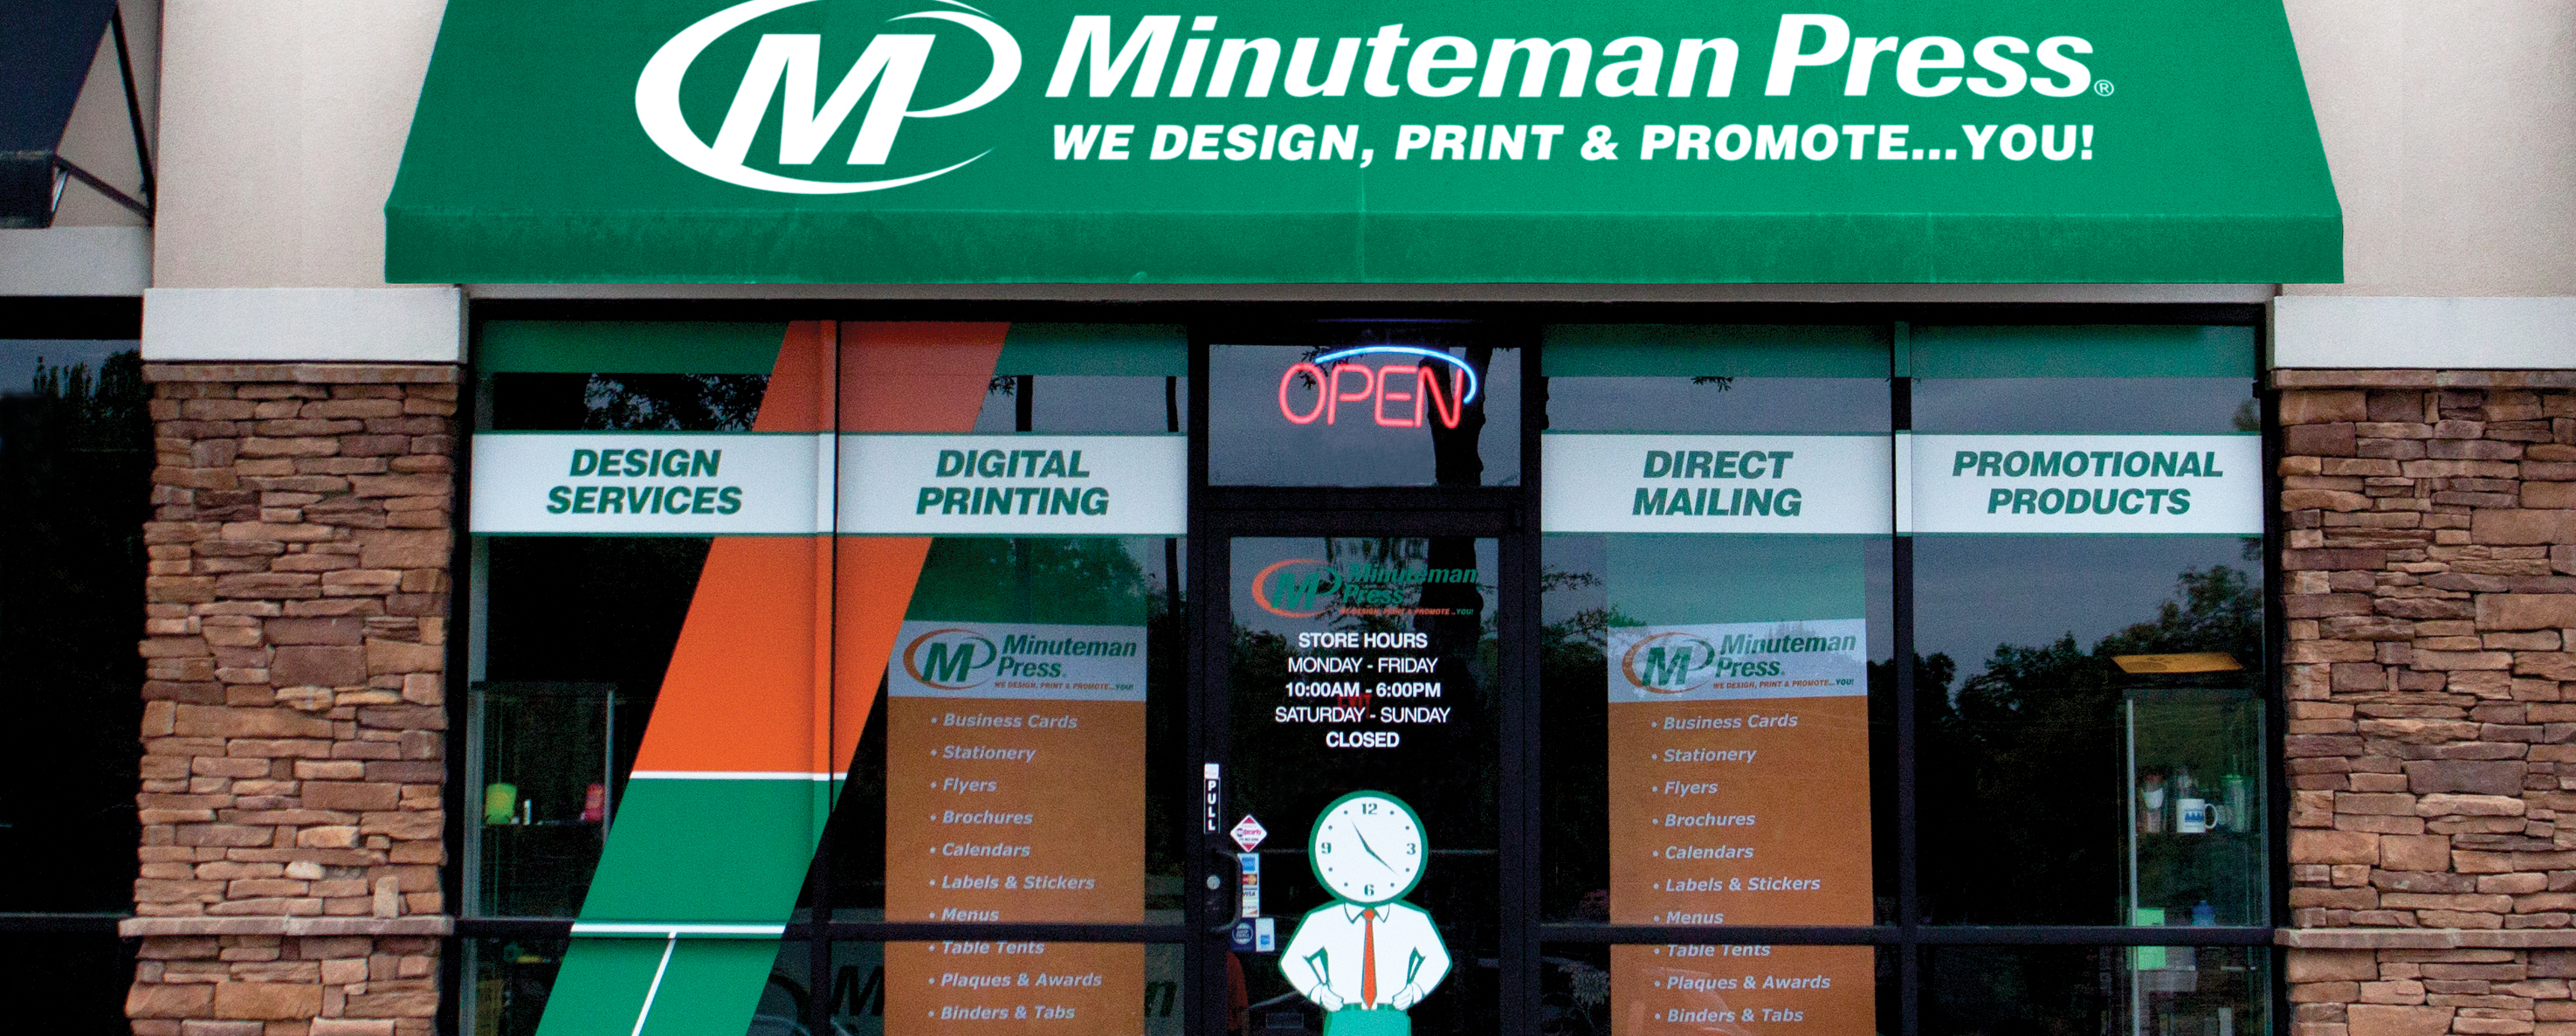 bece33887 Minuteman Press Printing Franchise - Business Services Marketing